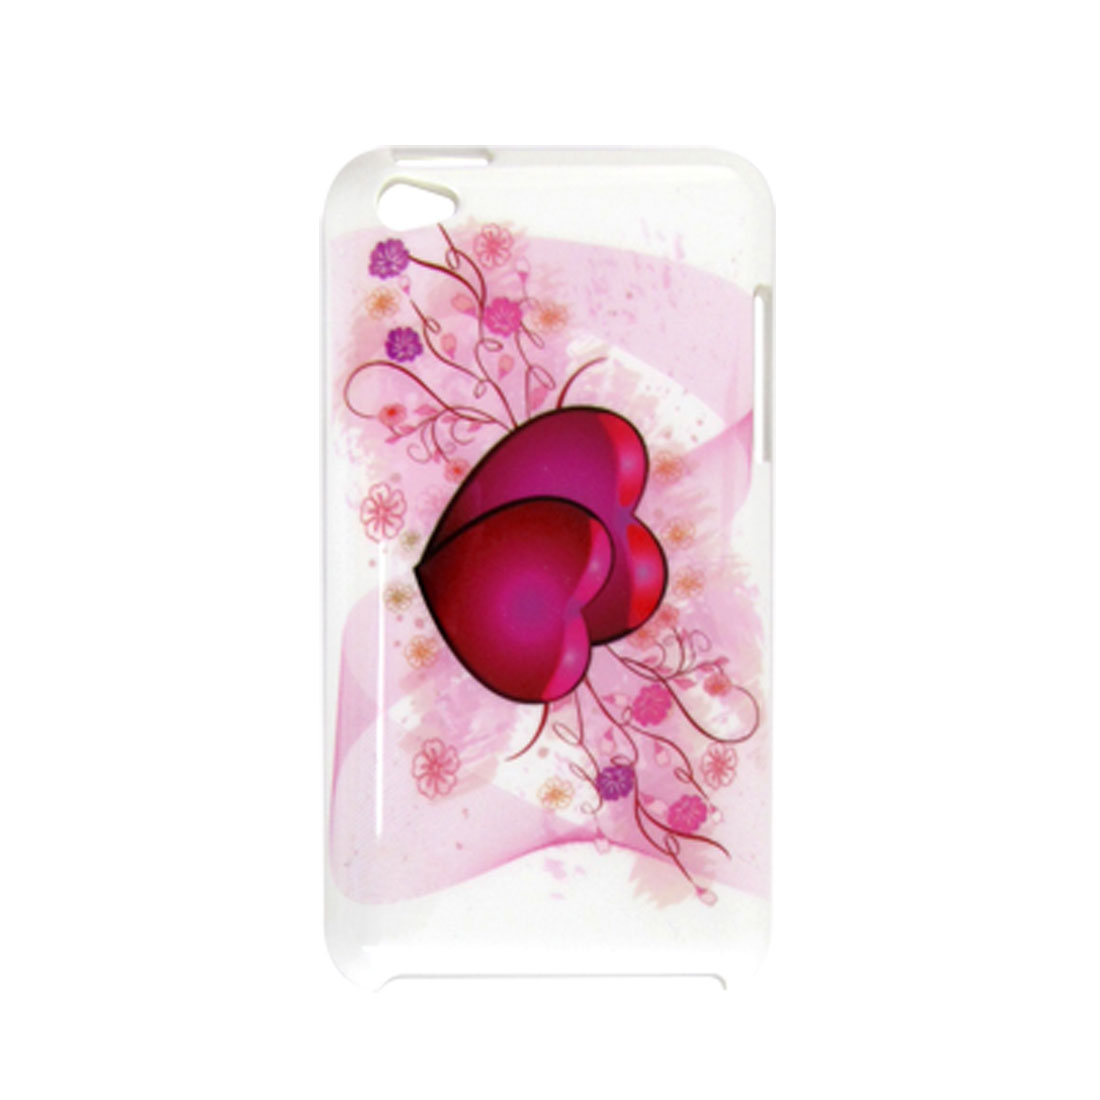 IMD Double Heart White Plastic Back Cover for iPod Touch 4G